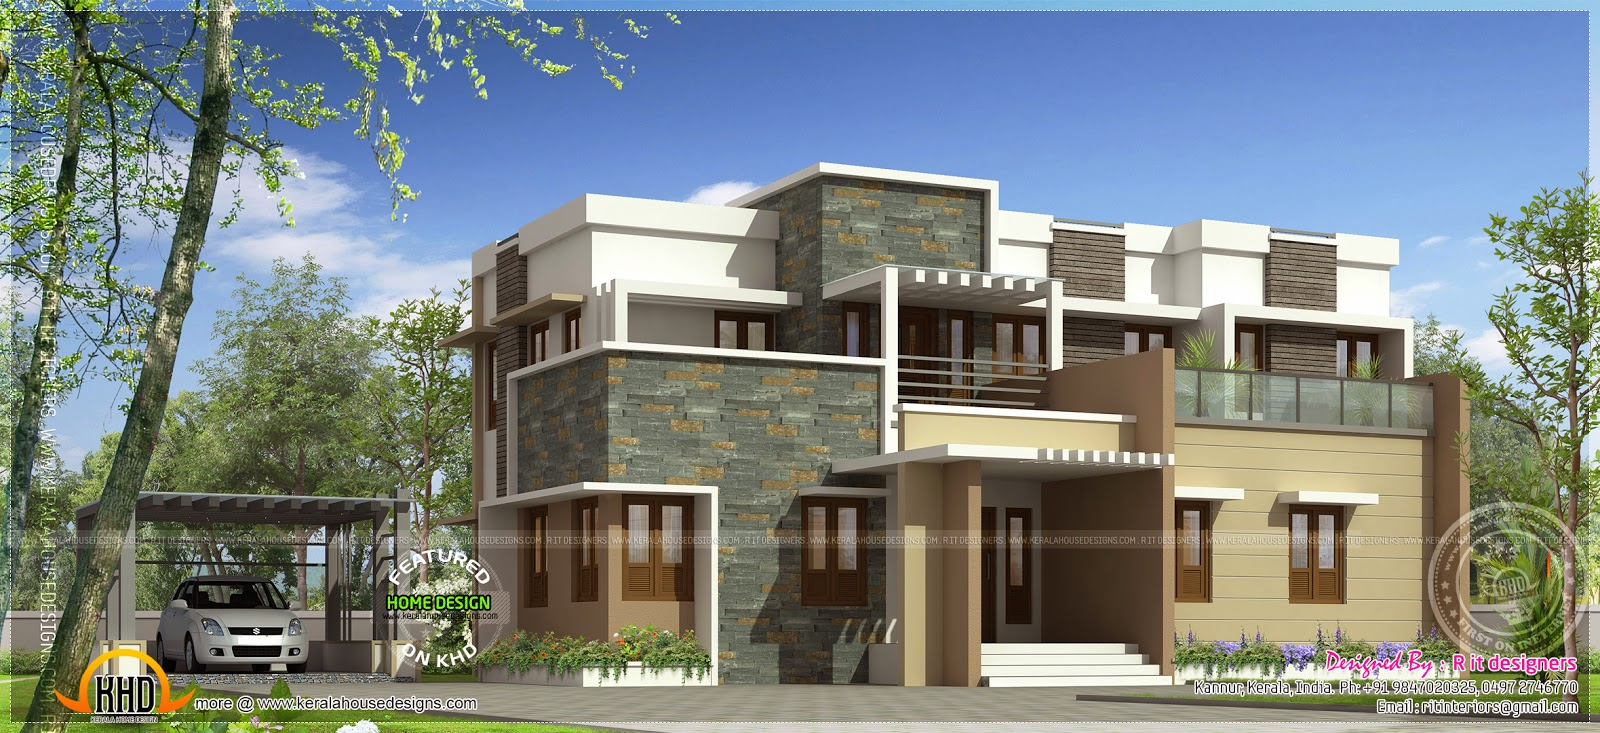 3 Bedroom Single Storied In 1500 Keralahousedesigns